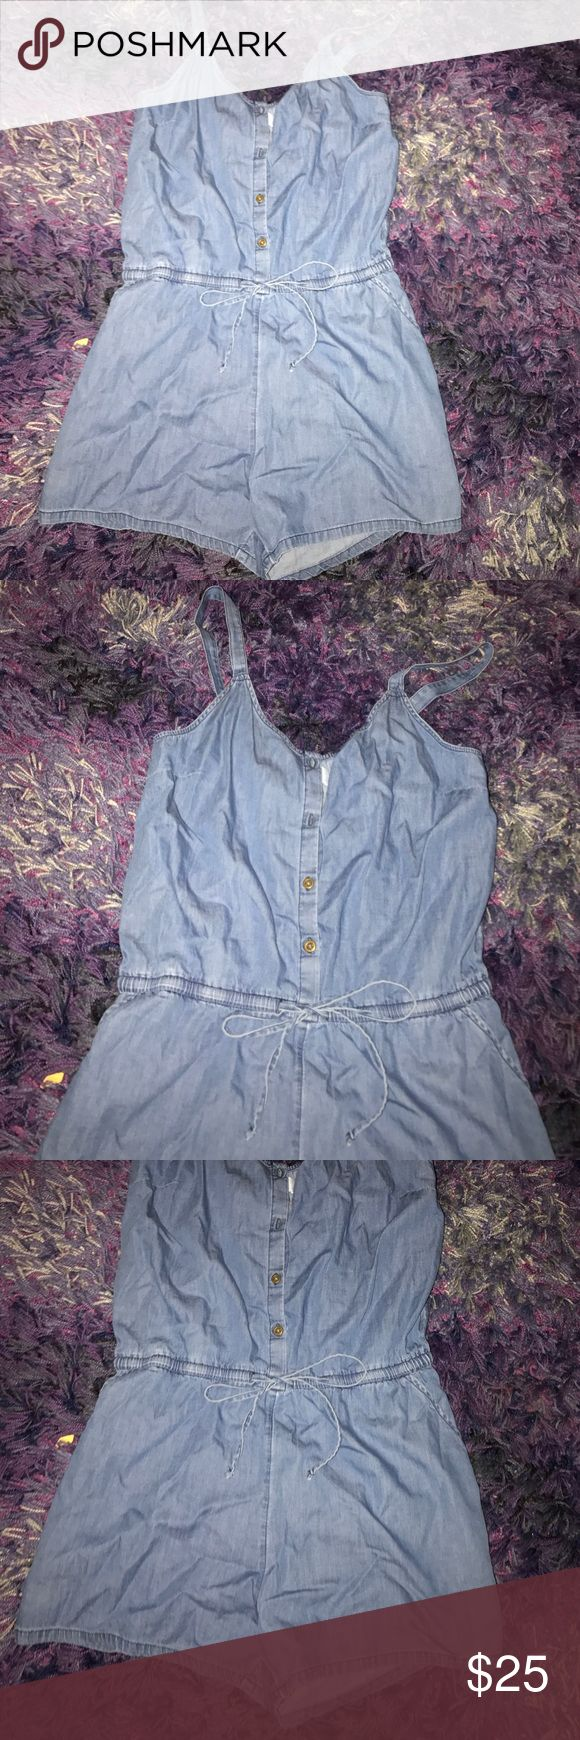 BLUE JEAN ROMPER cute blue jean romper w adjustable straps! Old Navy Pants Jumpsuits & Rompers